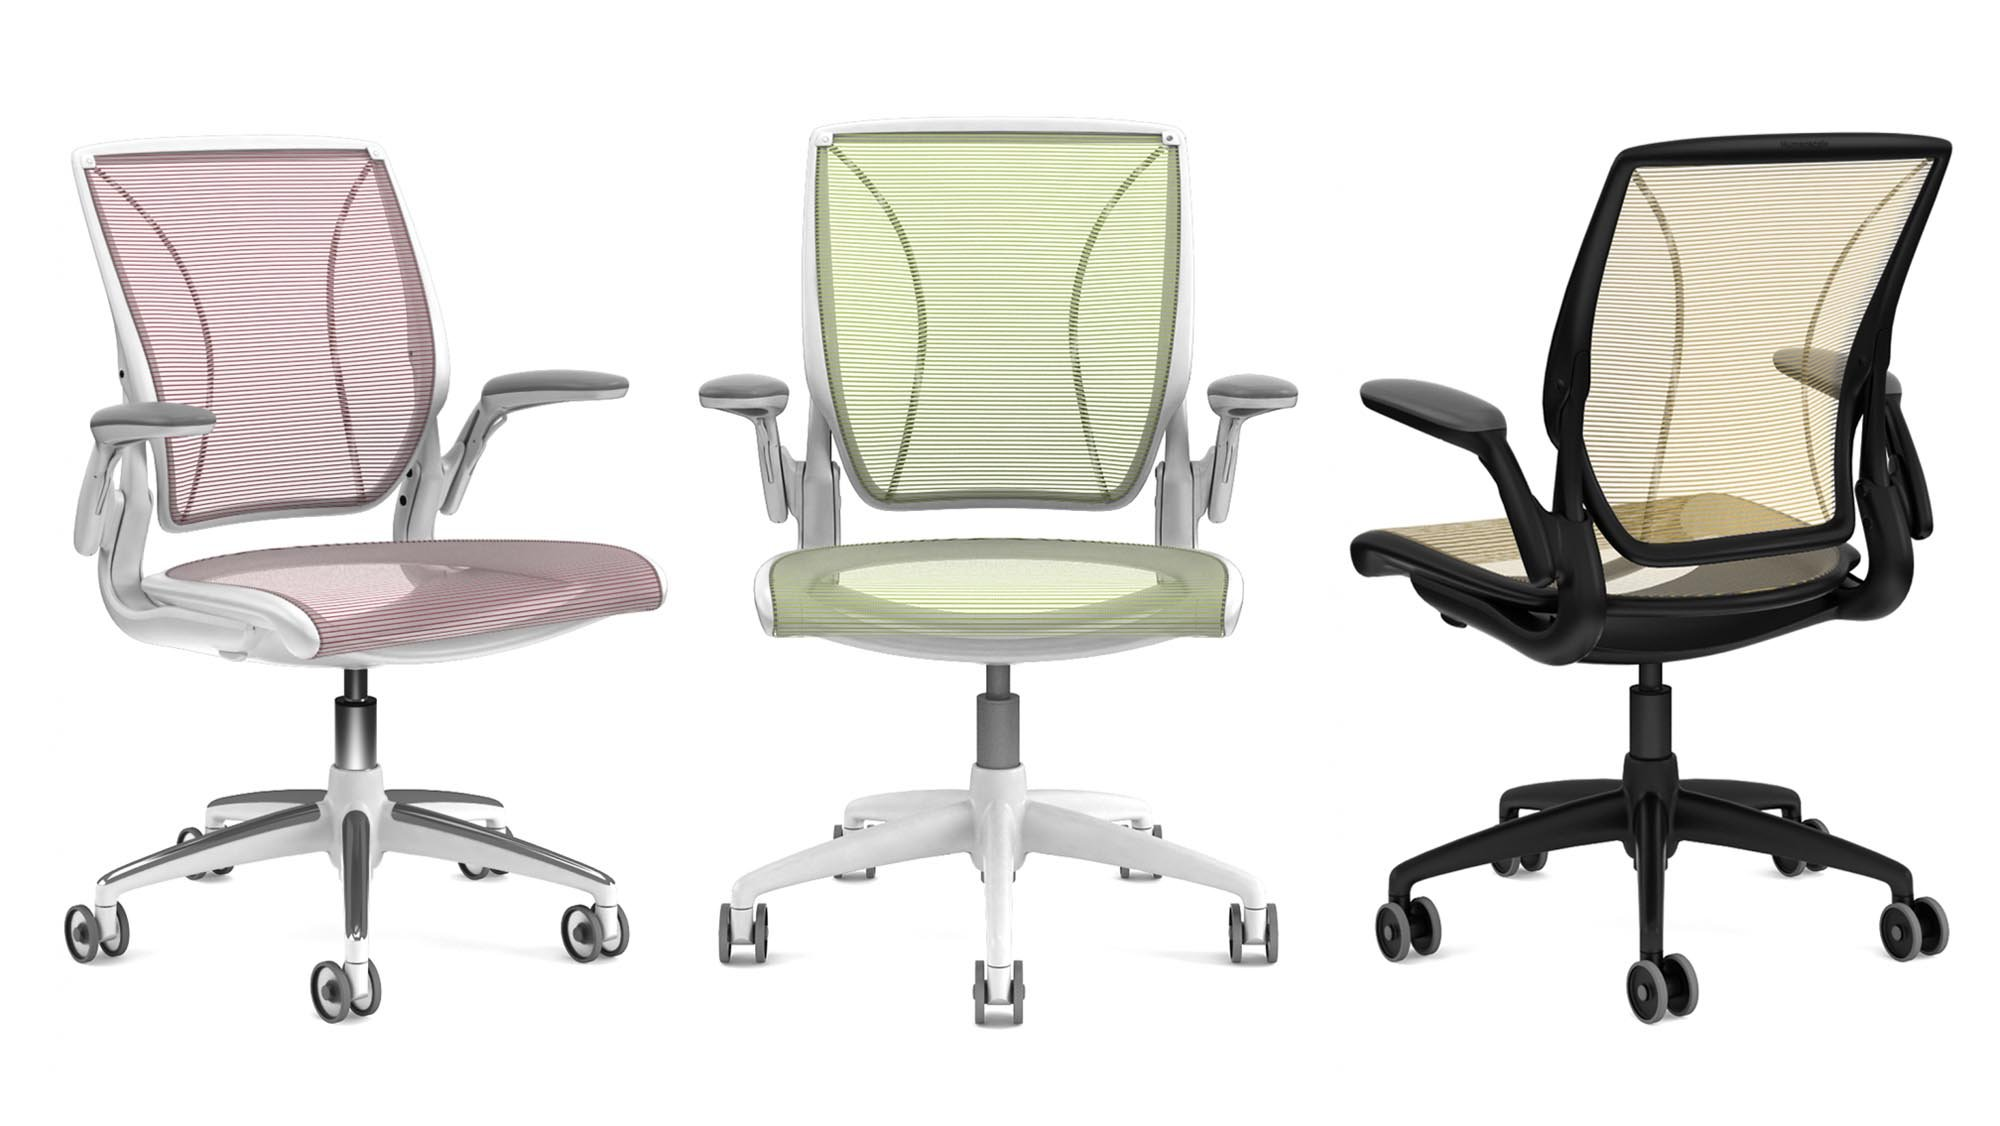 And AdjustabilityFrom Chair As Office 2018StyleComfort Best deCxWrBo